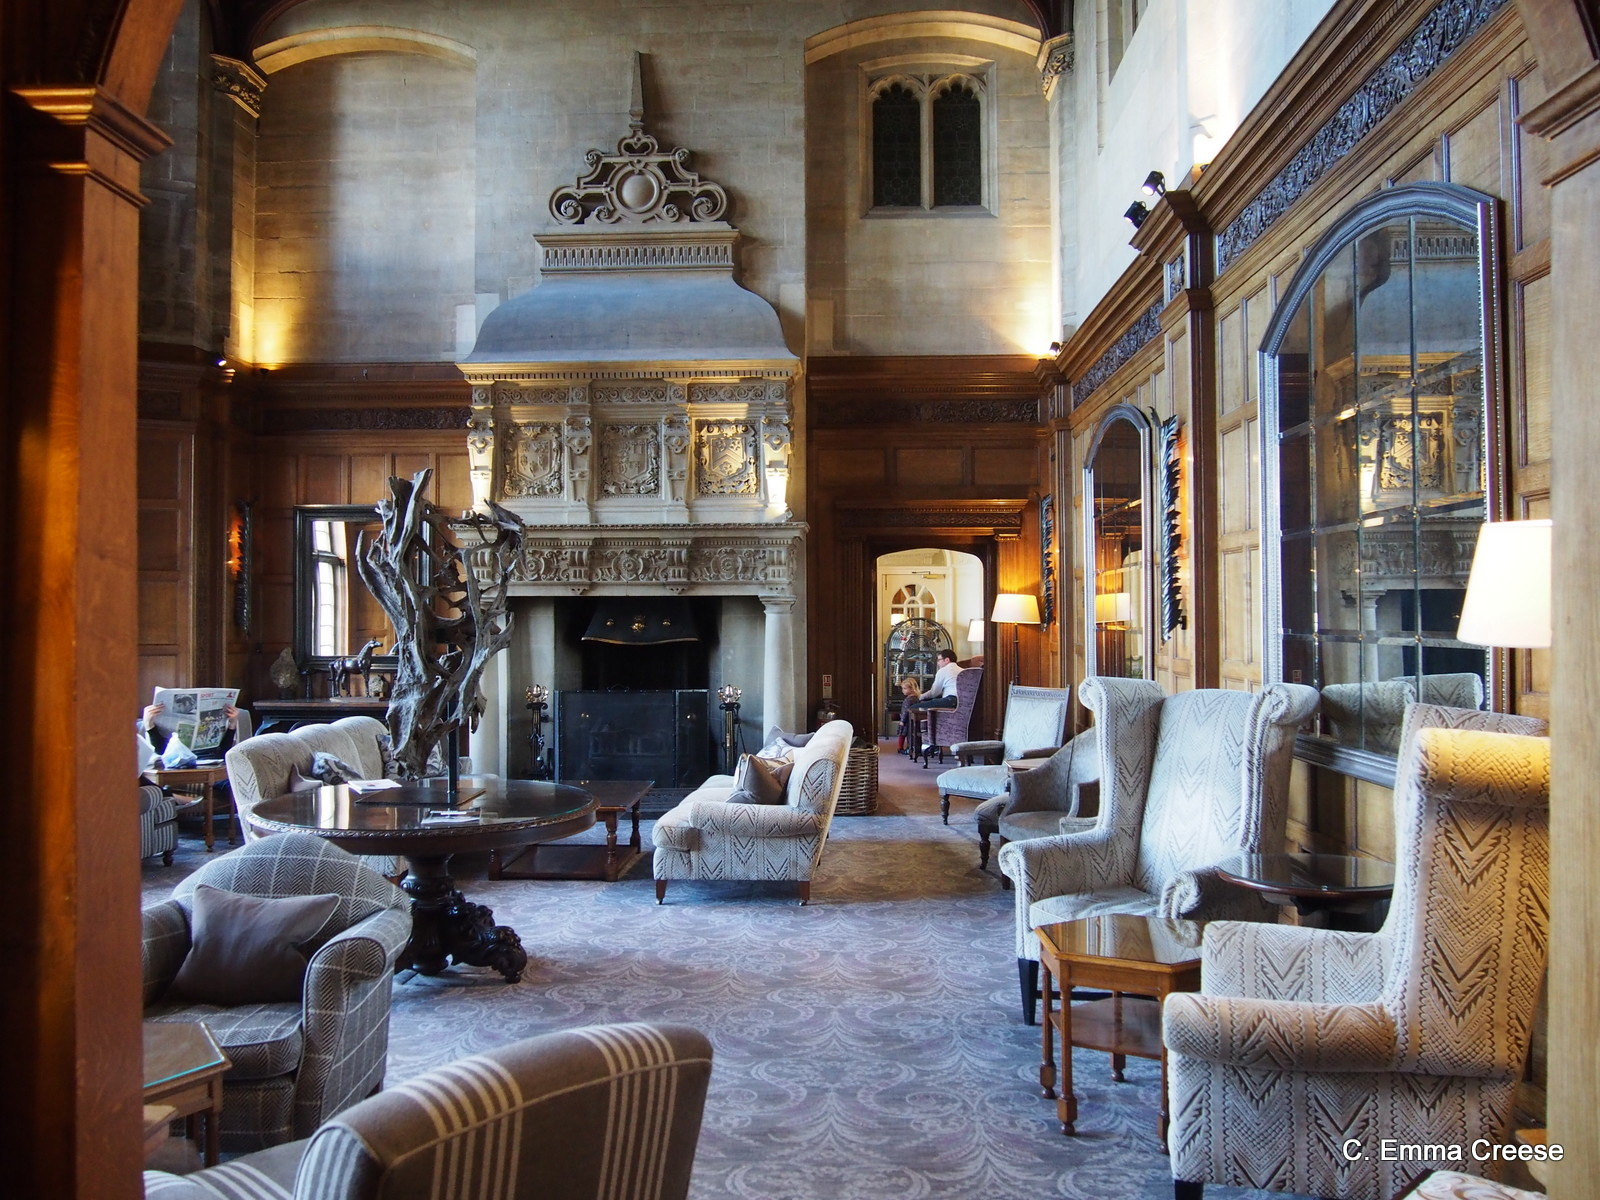 Our stay at the luxurious Bovey Castle Hotel – Codename: OperationDon'tTellAftab